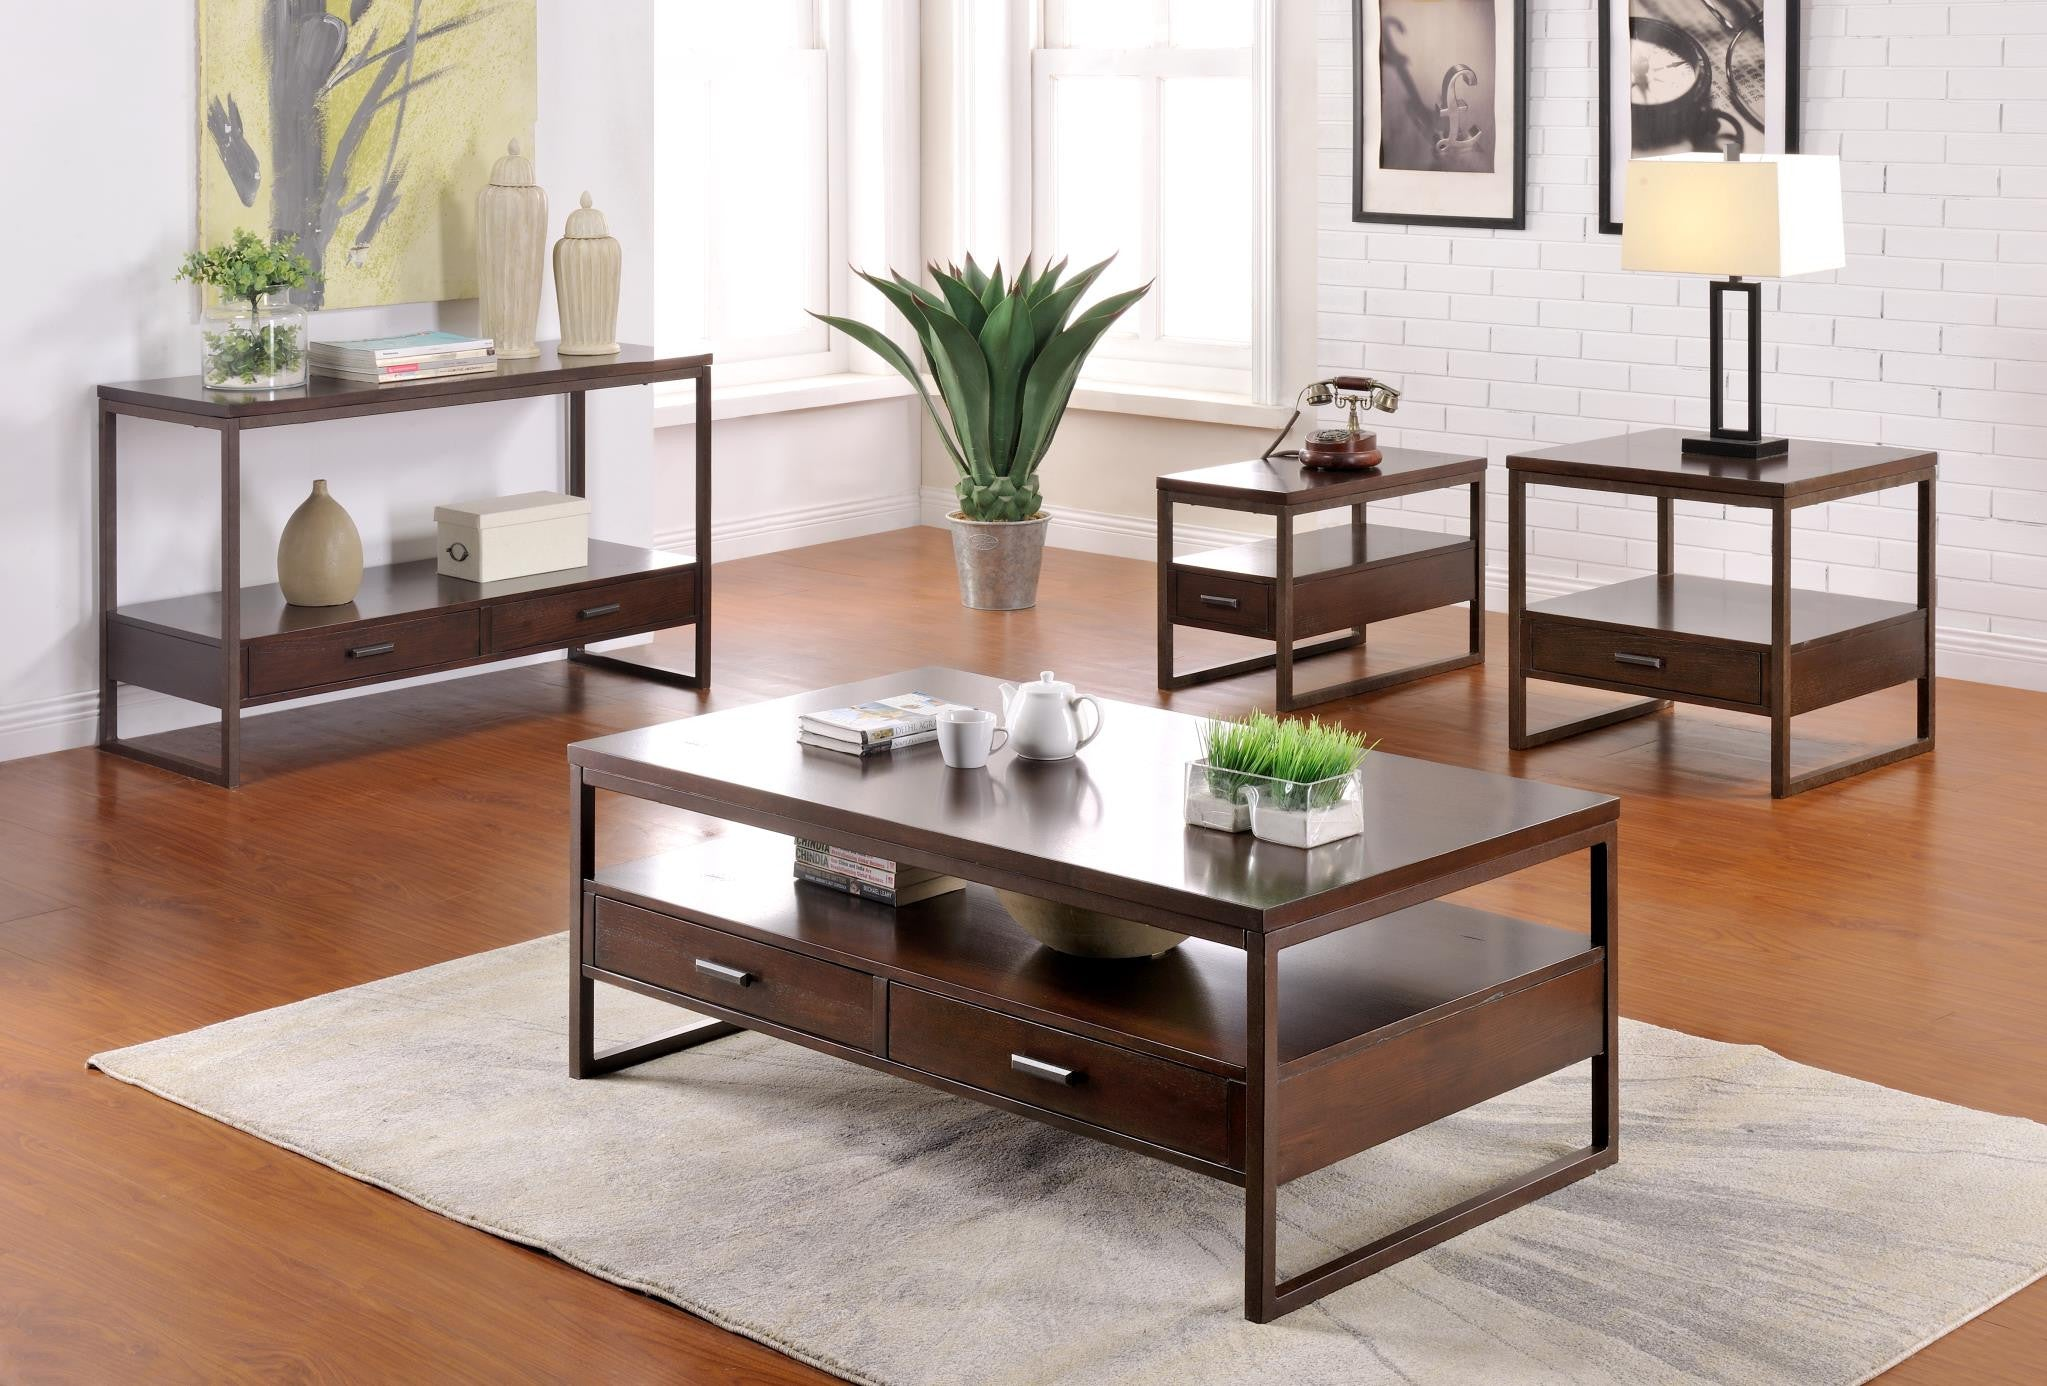 Silas Occasional 3 Piece Coffee Table Set & Silas Occasional 3 Piece Coffee Table Set u2014 Mindys Home Goods